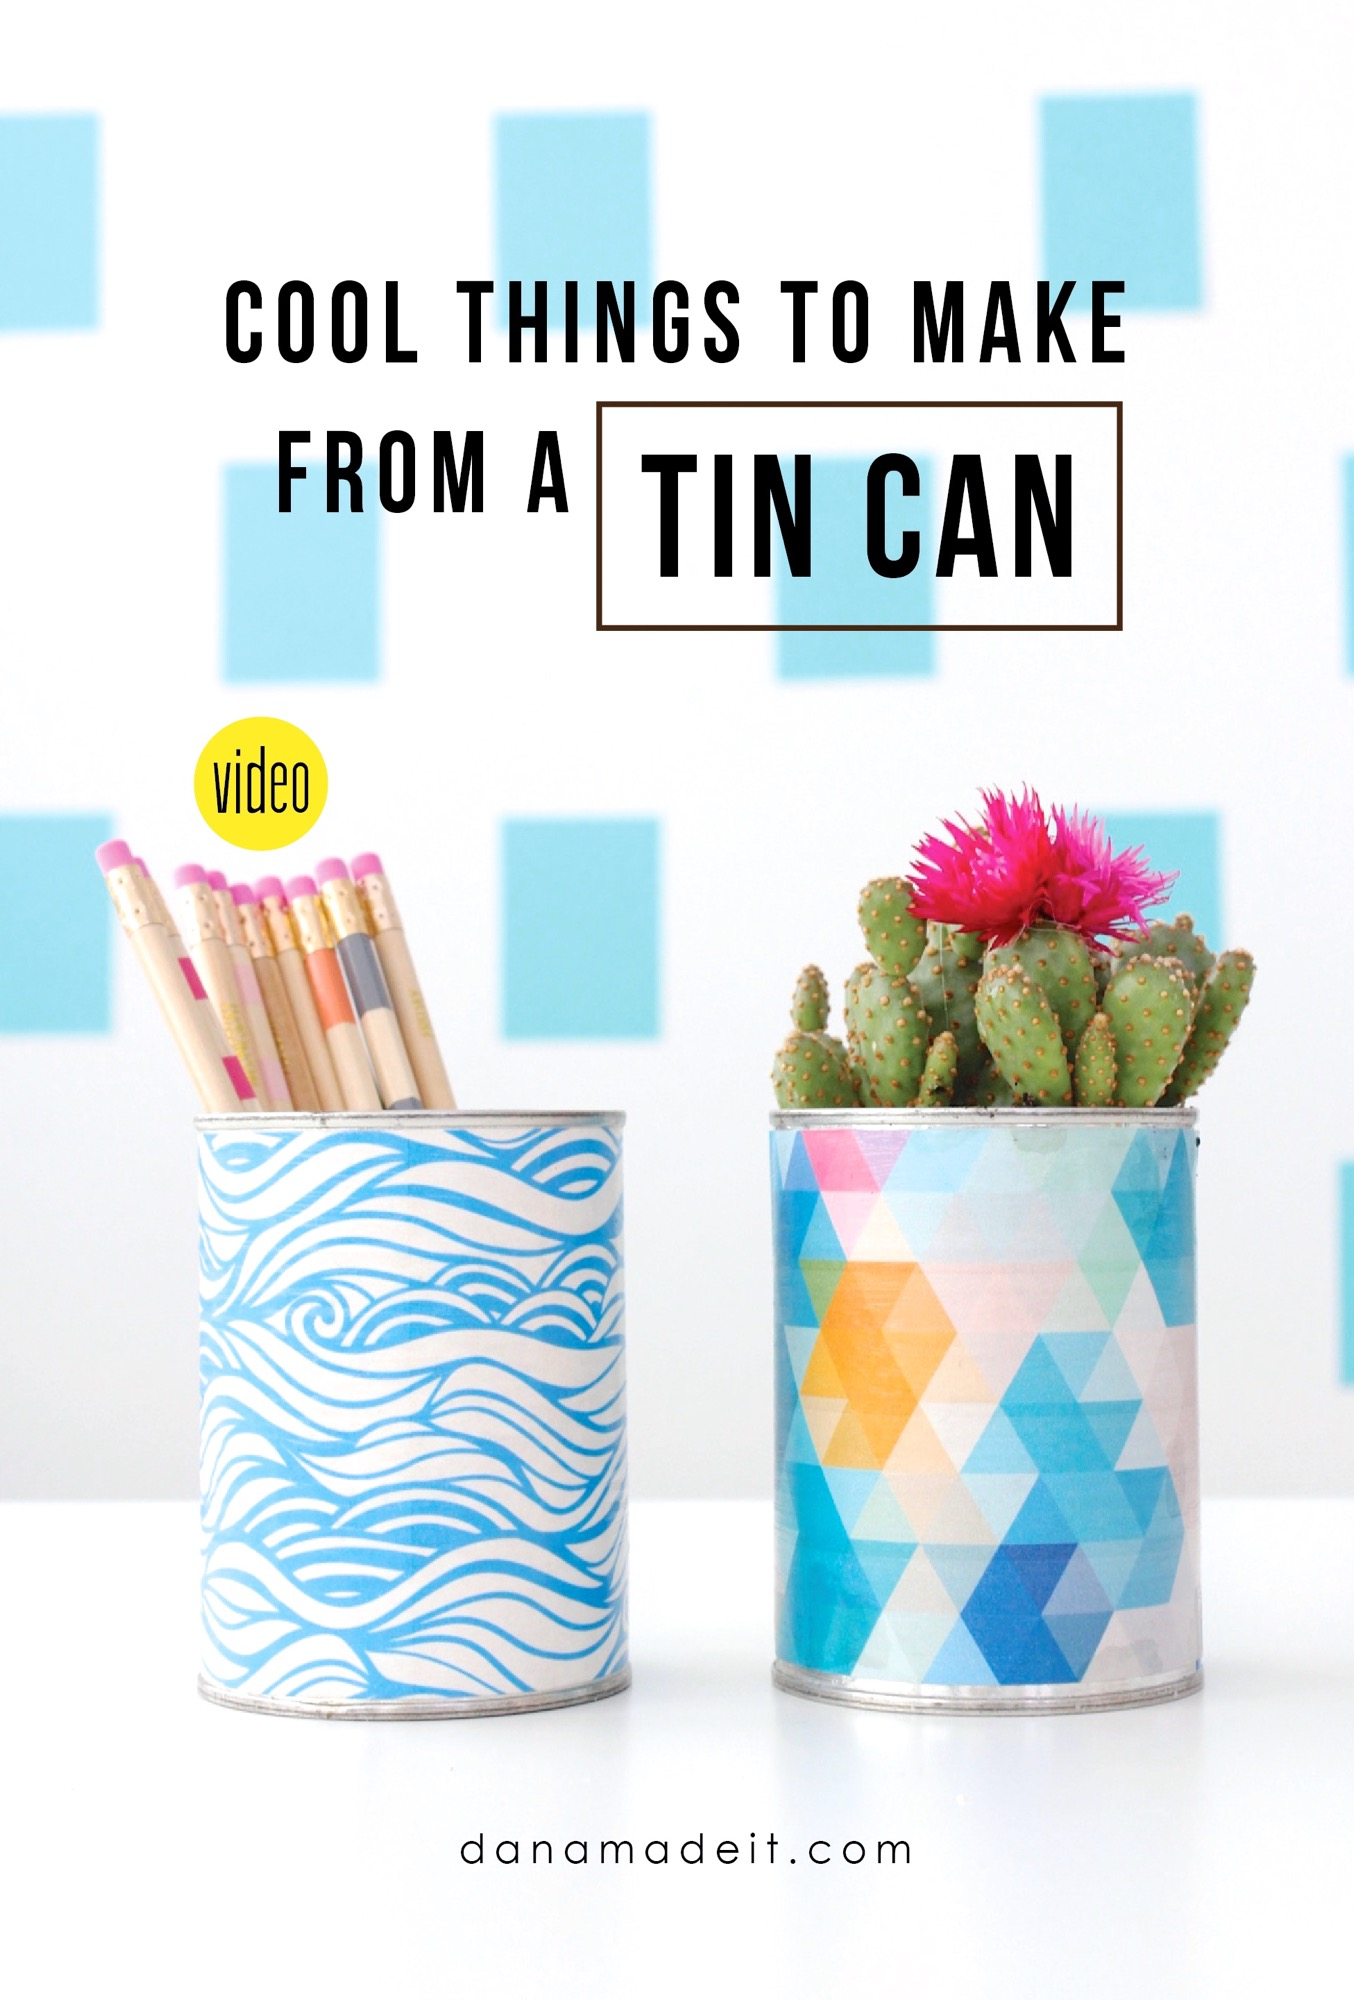 awesome things tin can crafts made everyday